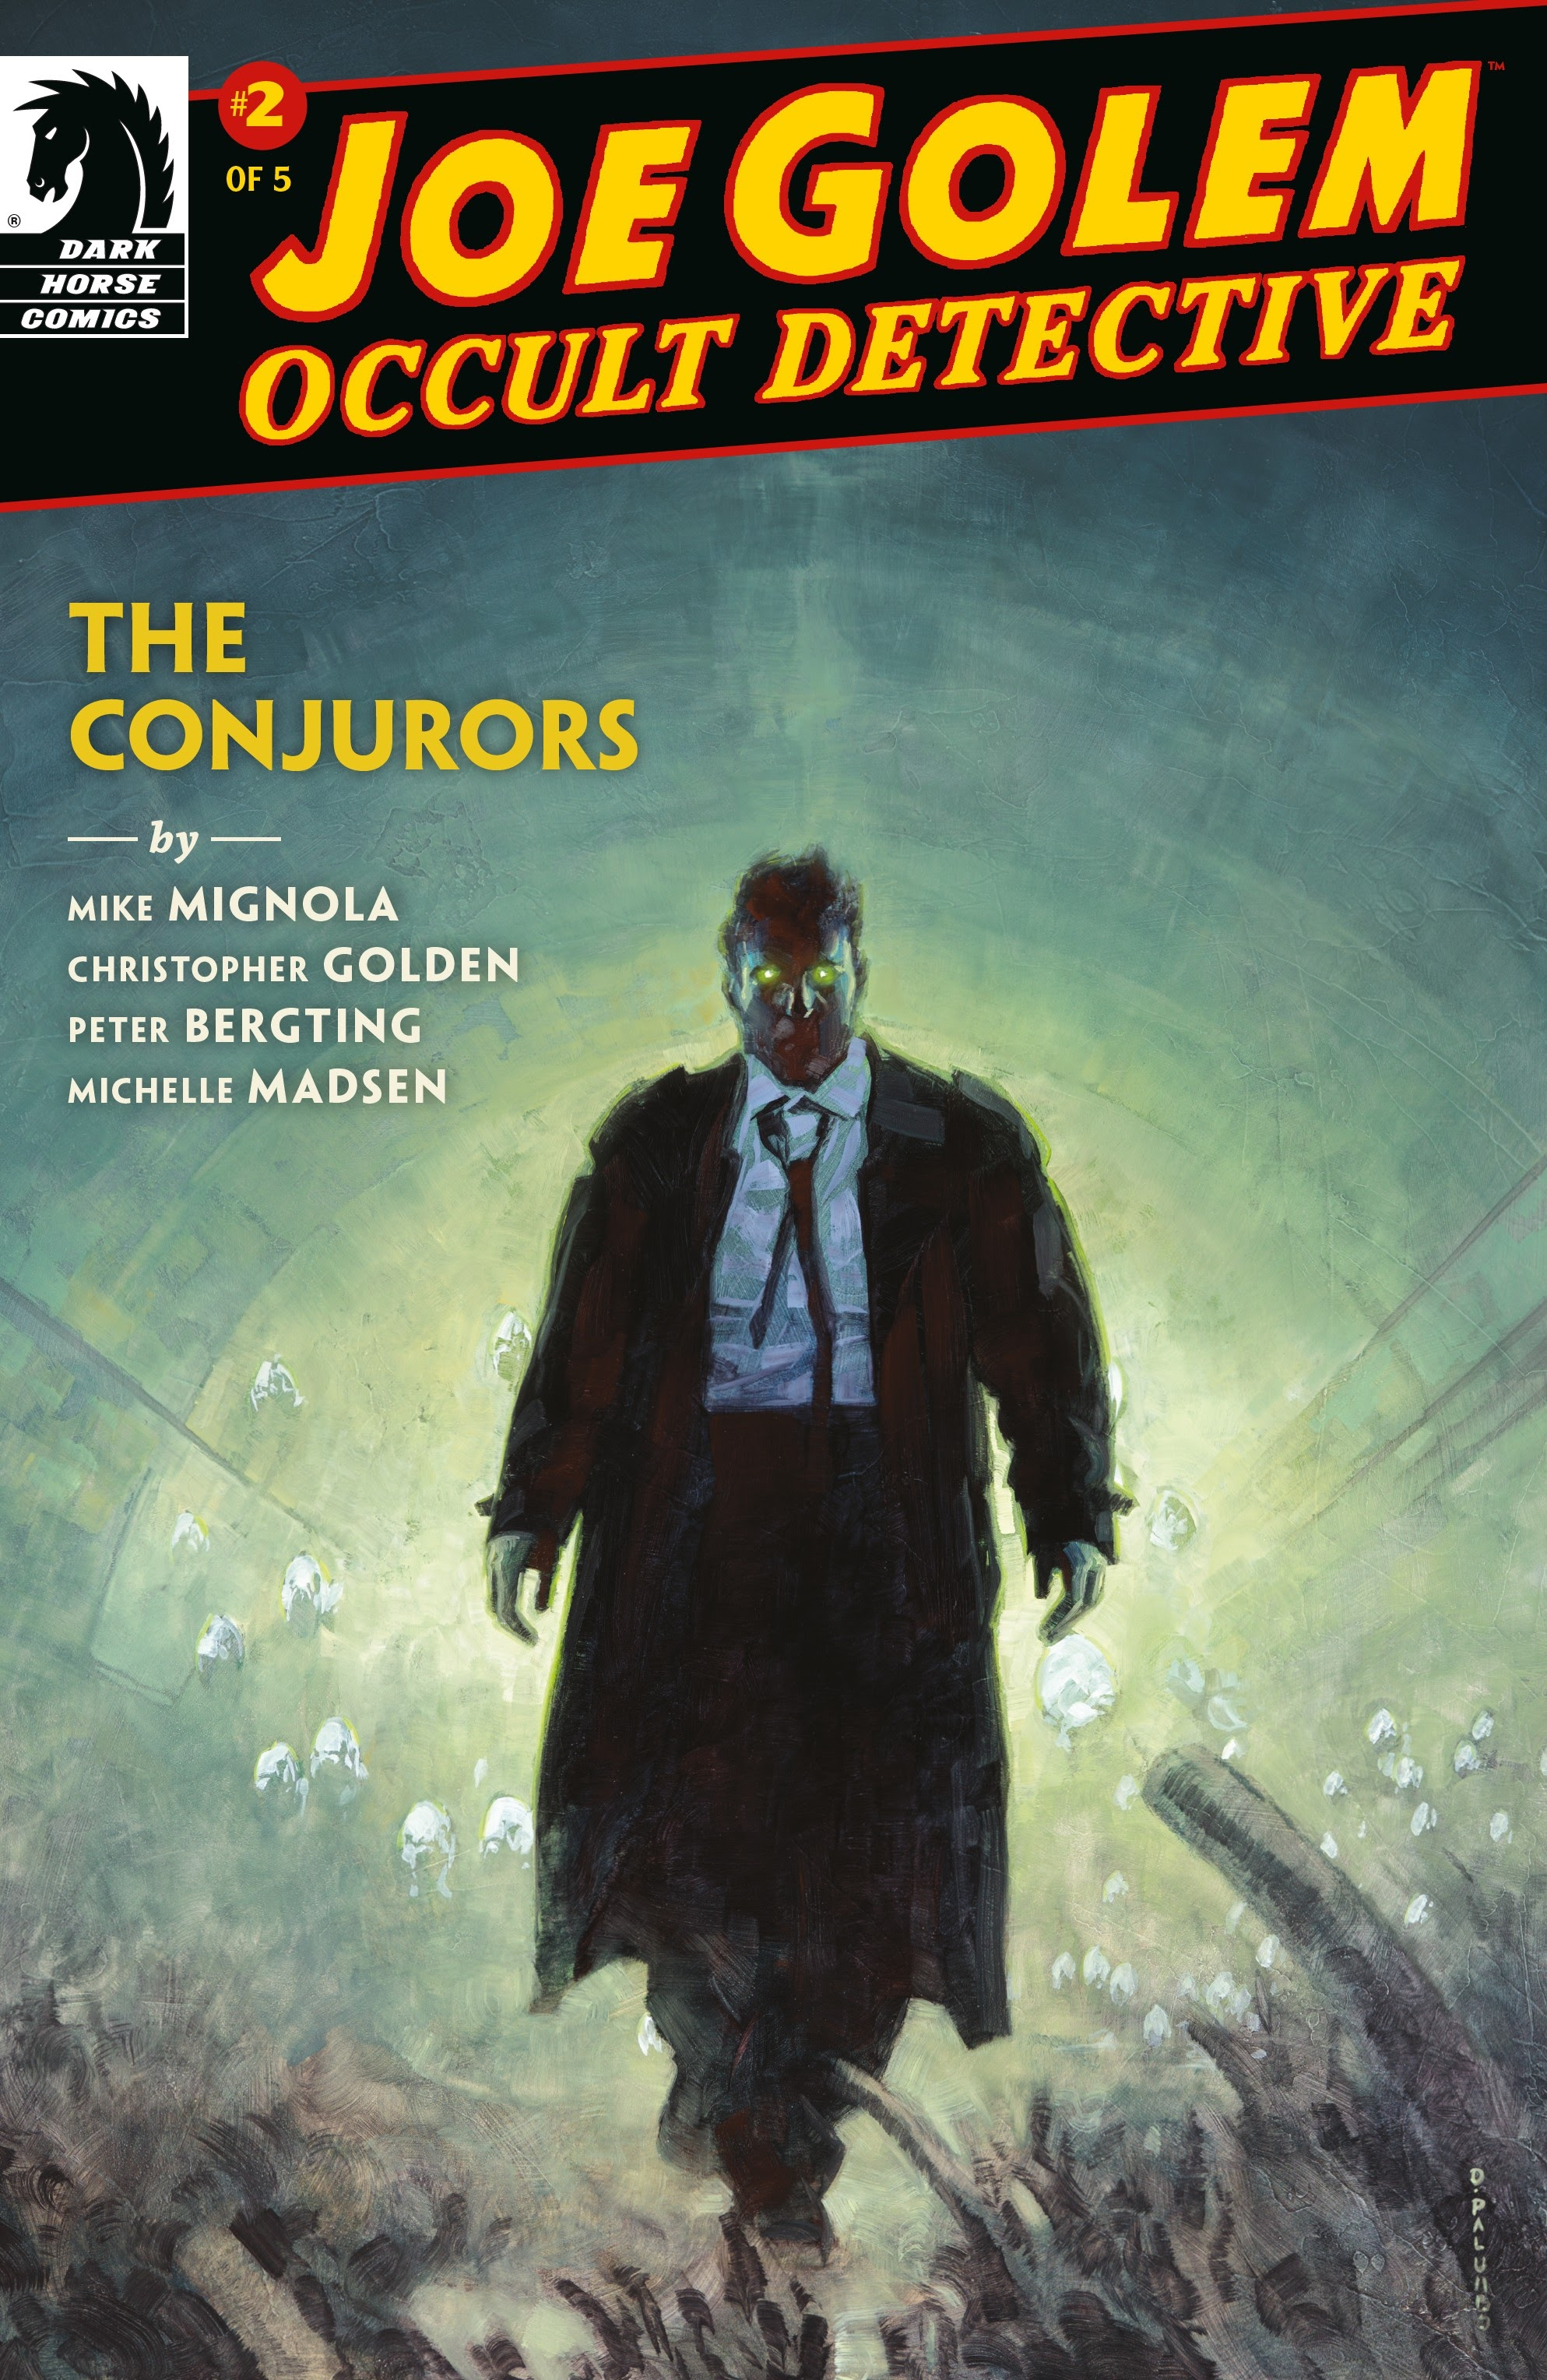 Joe Golem: Occult Detective--The Conjurors 2 Page 1